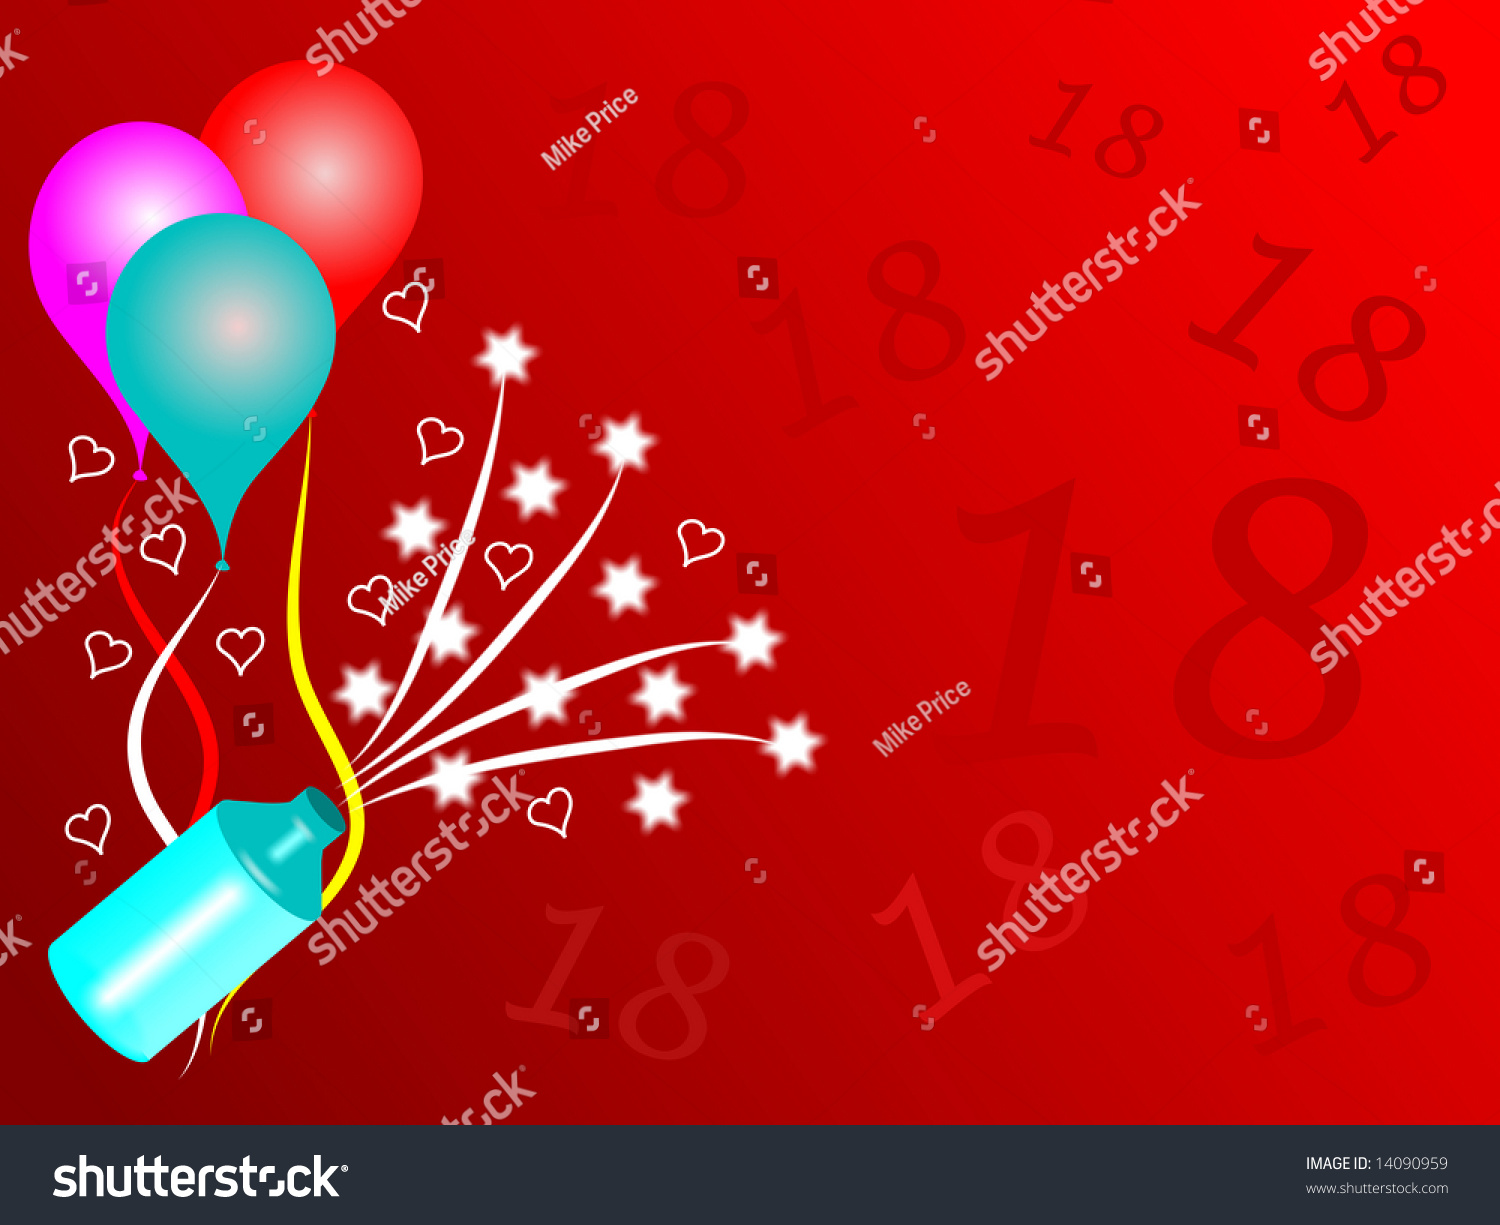 18th birthday background room text baloons stock illustration